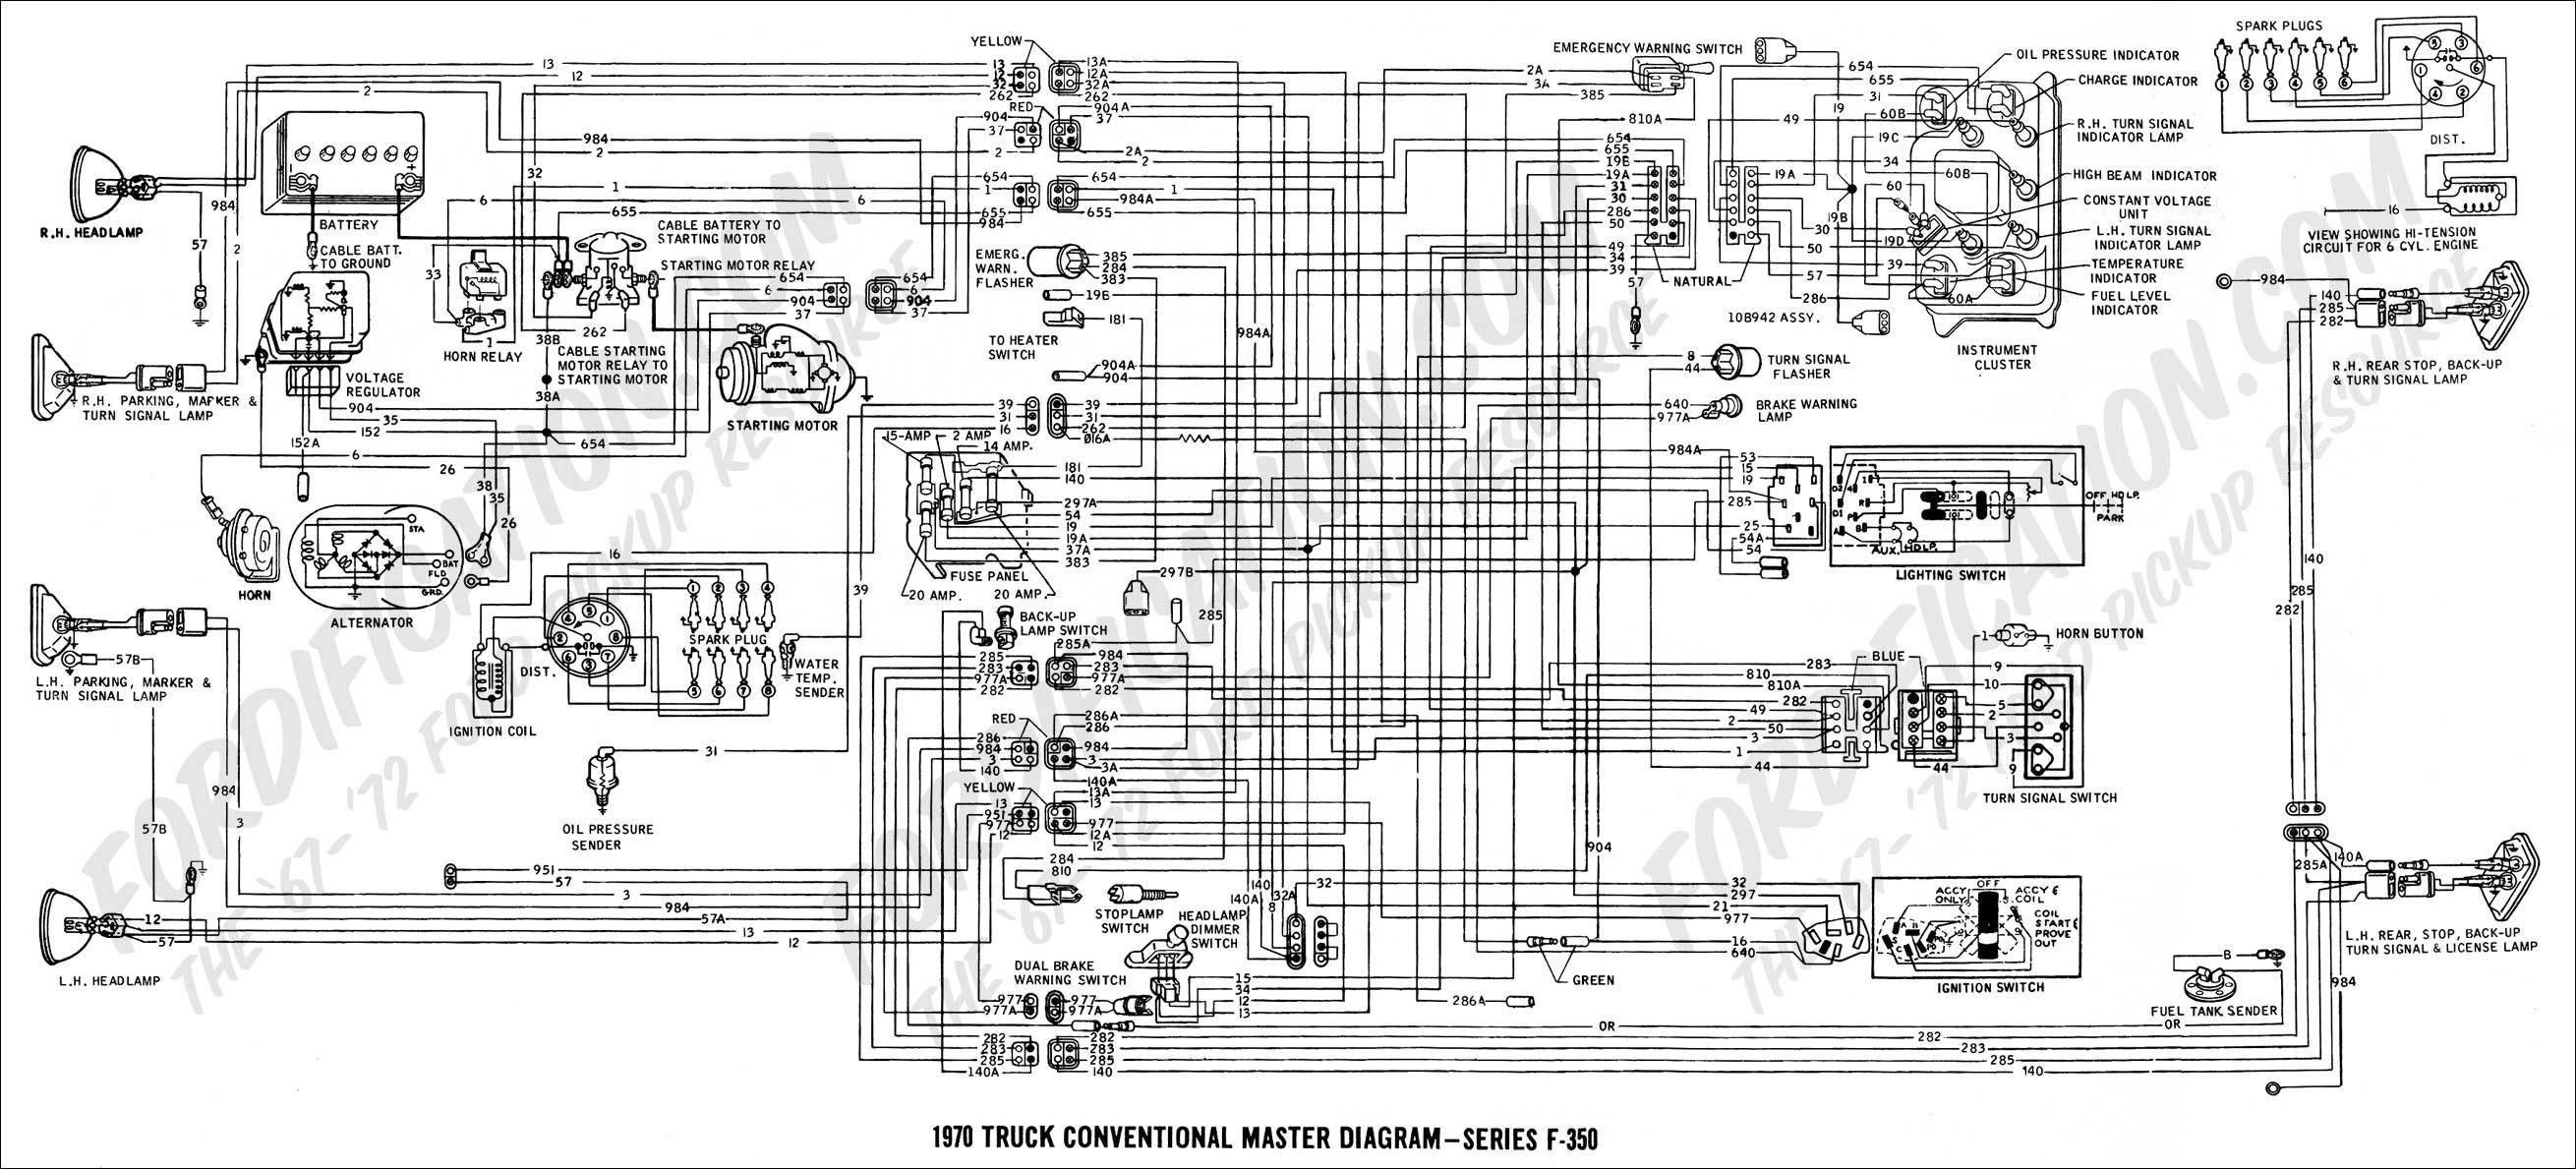 Unique Ac Circuit Diagram Diagram Wiringdiagram Diagramming Diagramm Visuals Visualisation Graphical Ford Ranger Ford F350 Ford Truck